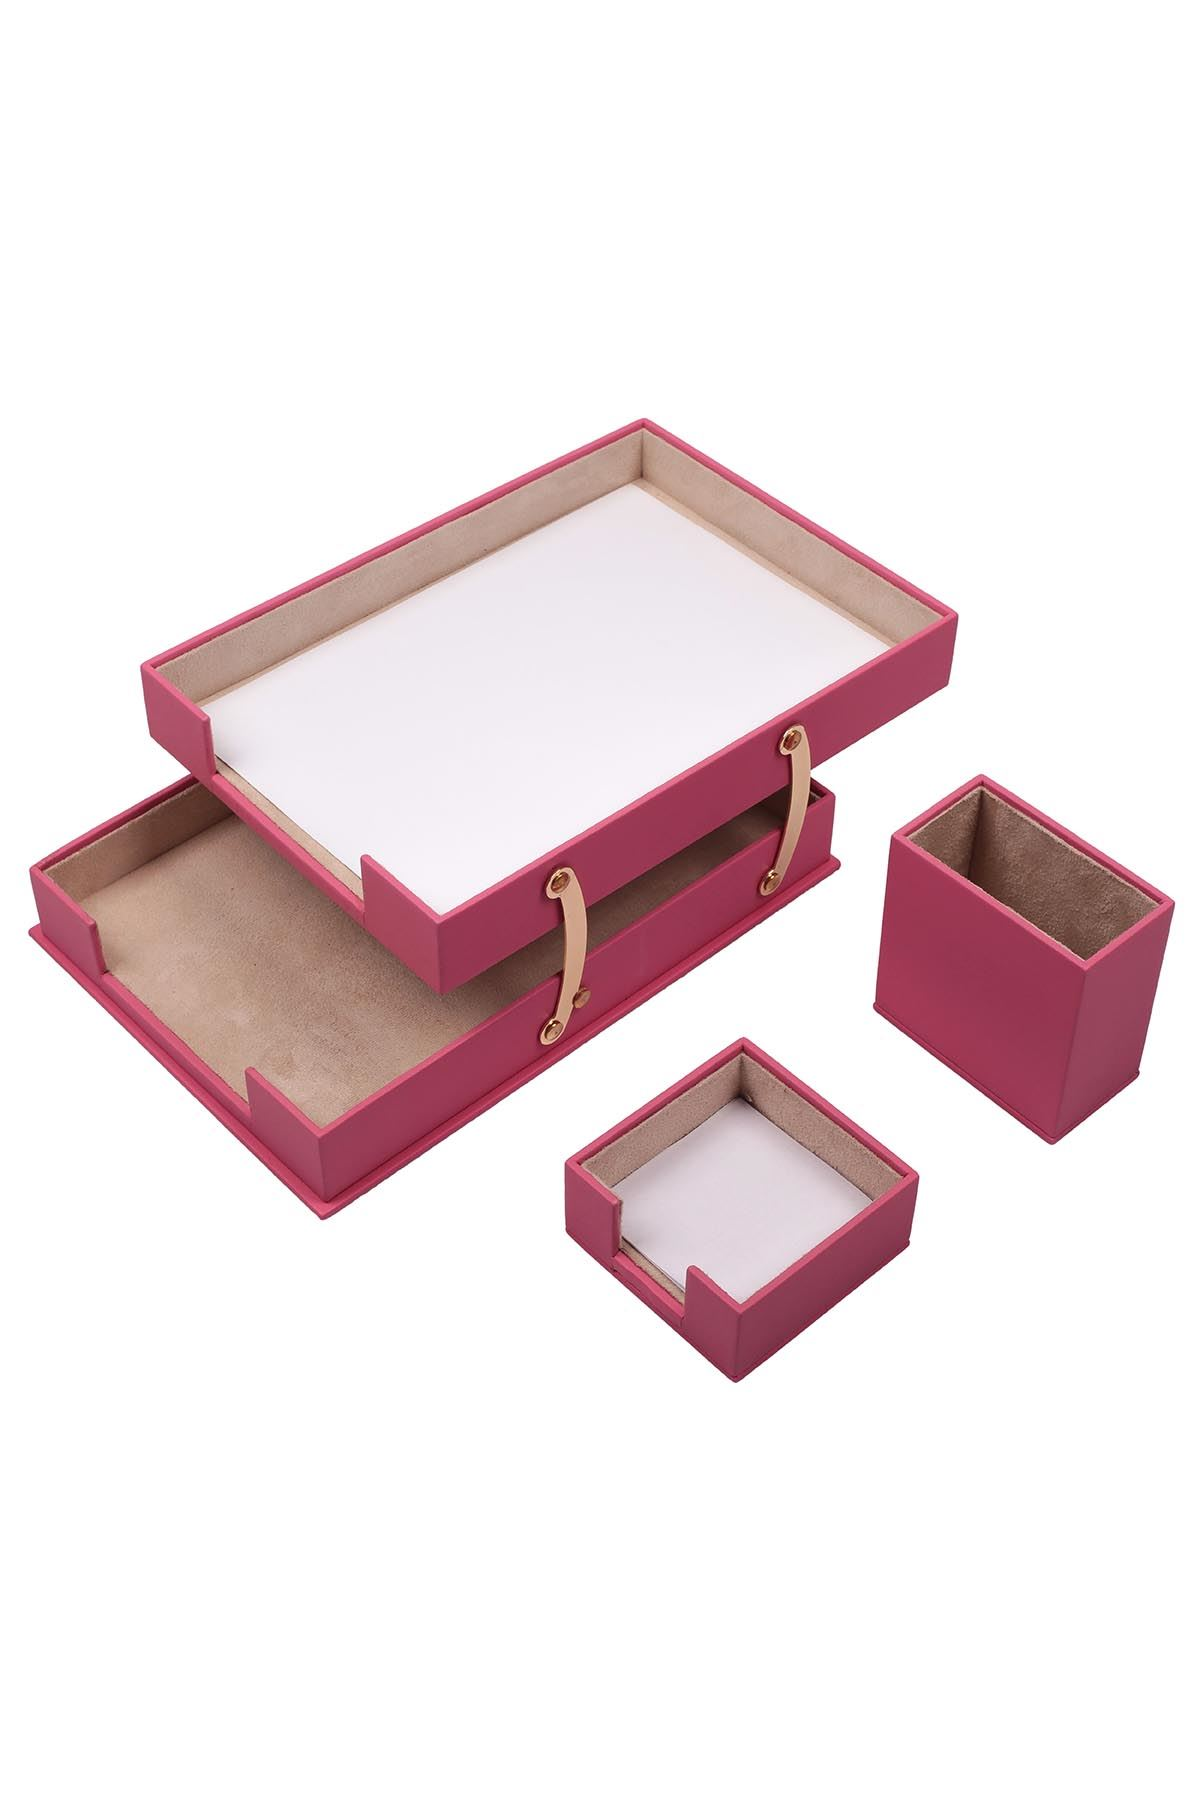 Double Document Tray With 2 Accessories Pink| Desk Set Accessories | Desktop Accessories | Desk Accessories | Desk Organizers